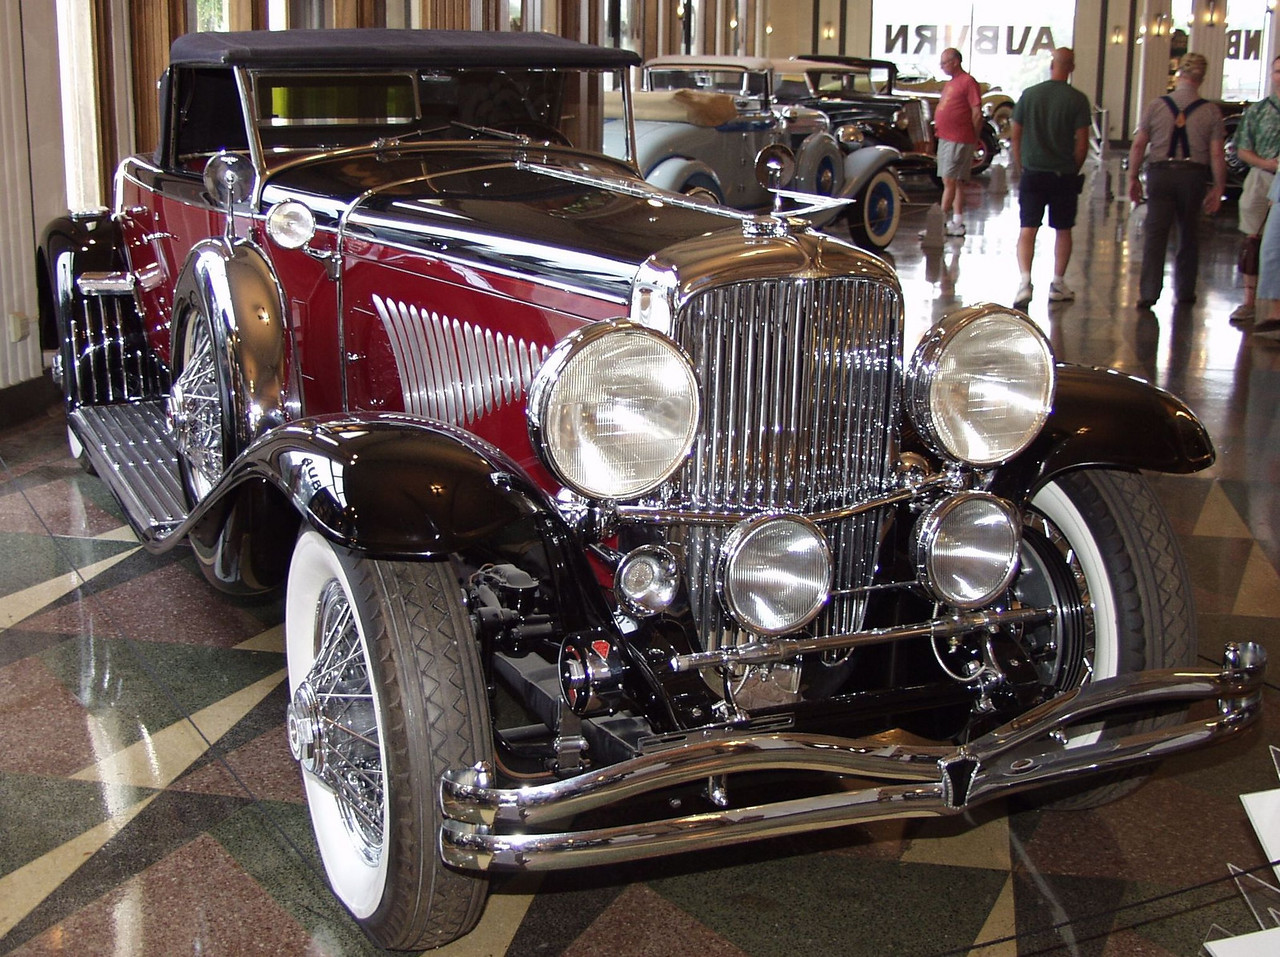 "This magnificently restored Duesenberg features a Murphy body on the long wheelbase chassis. The Walter M. Murphy Company of Pasadena, California built more than 140 bodies for the Model J Duesenberg chassis; far more than any other body builder. The Murphy Convertible Coupe was the single most popular body built for the Model J Duesen berg. A Murphy desiqned body was part of the first Duesenberg offering at the Auto Salon held in New York in December, 1928. In all sixty were produced with most of them mounted on the ""short"" chasis at 142.5 inches. The most famous variation of the Murphy Convertible Coupe body, was the disappearing top which is featured on this vehicle. When the top is down it is stowed under the deck lid so that none of the fabric or folding mechanisim is visible."